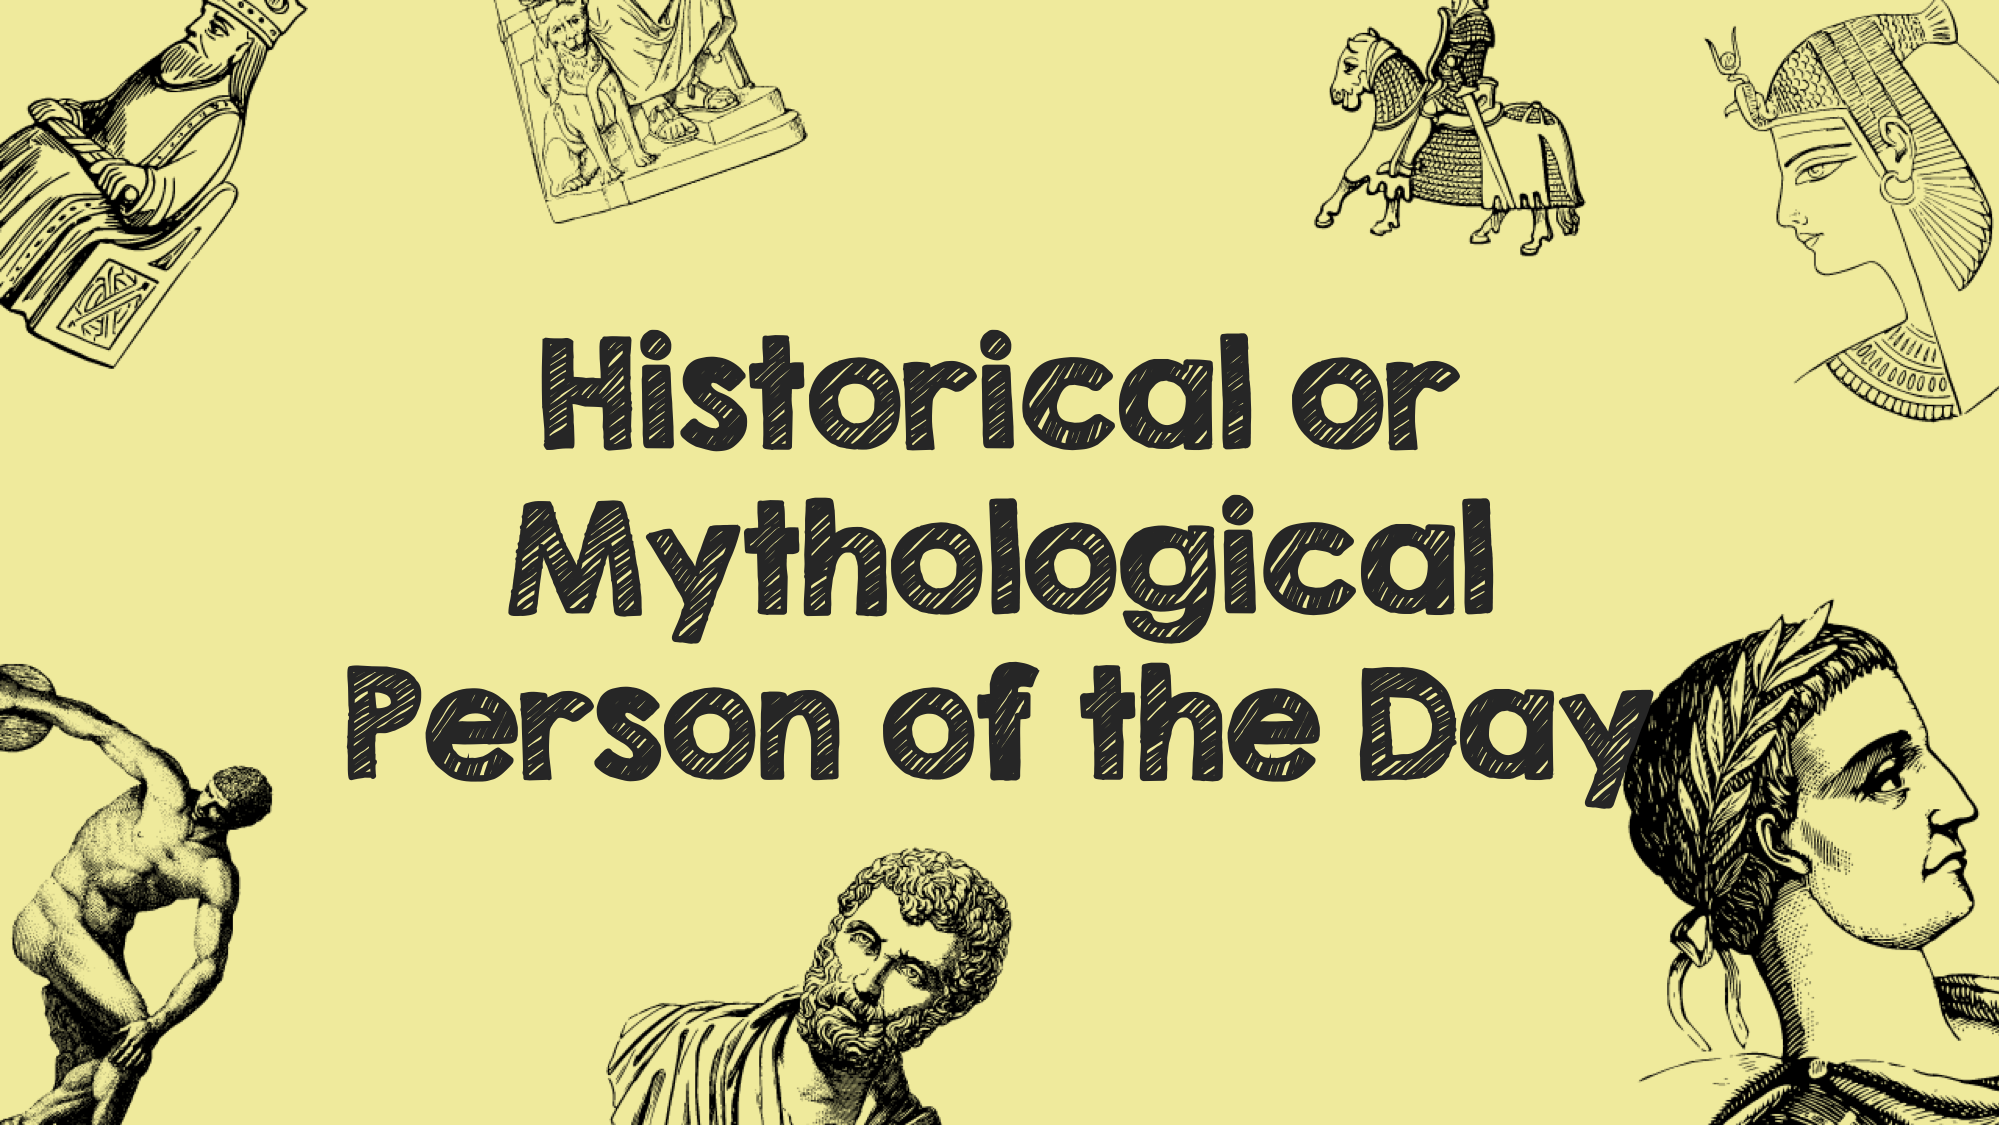 Historical or Mythological Person of the Day